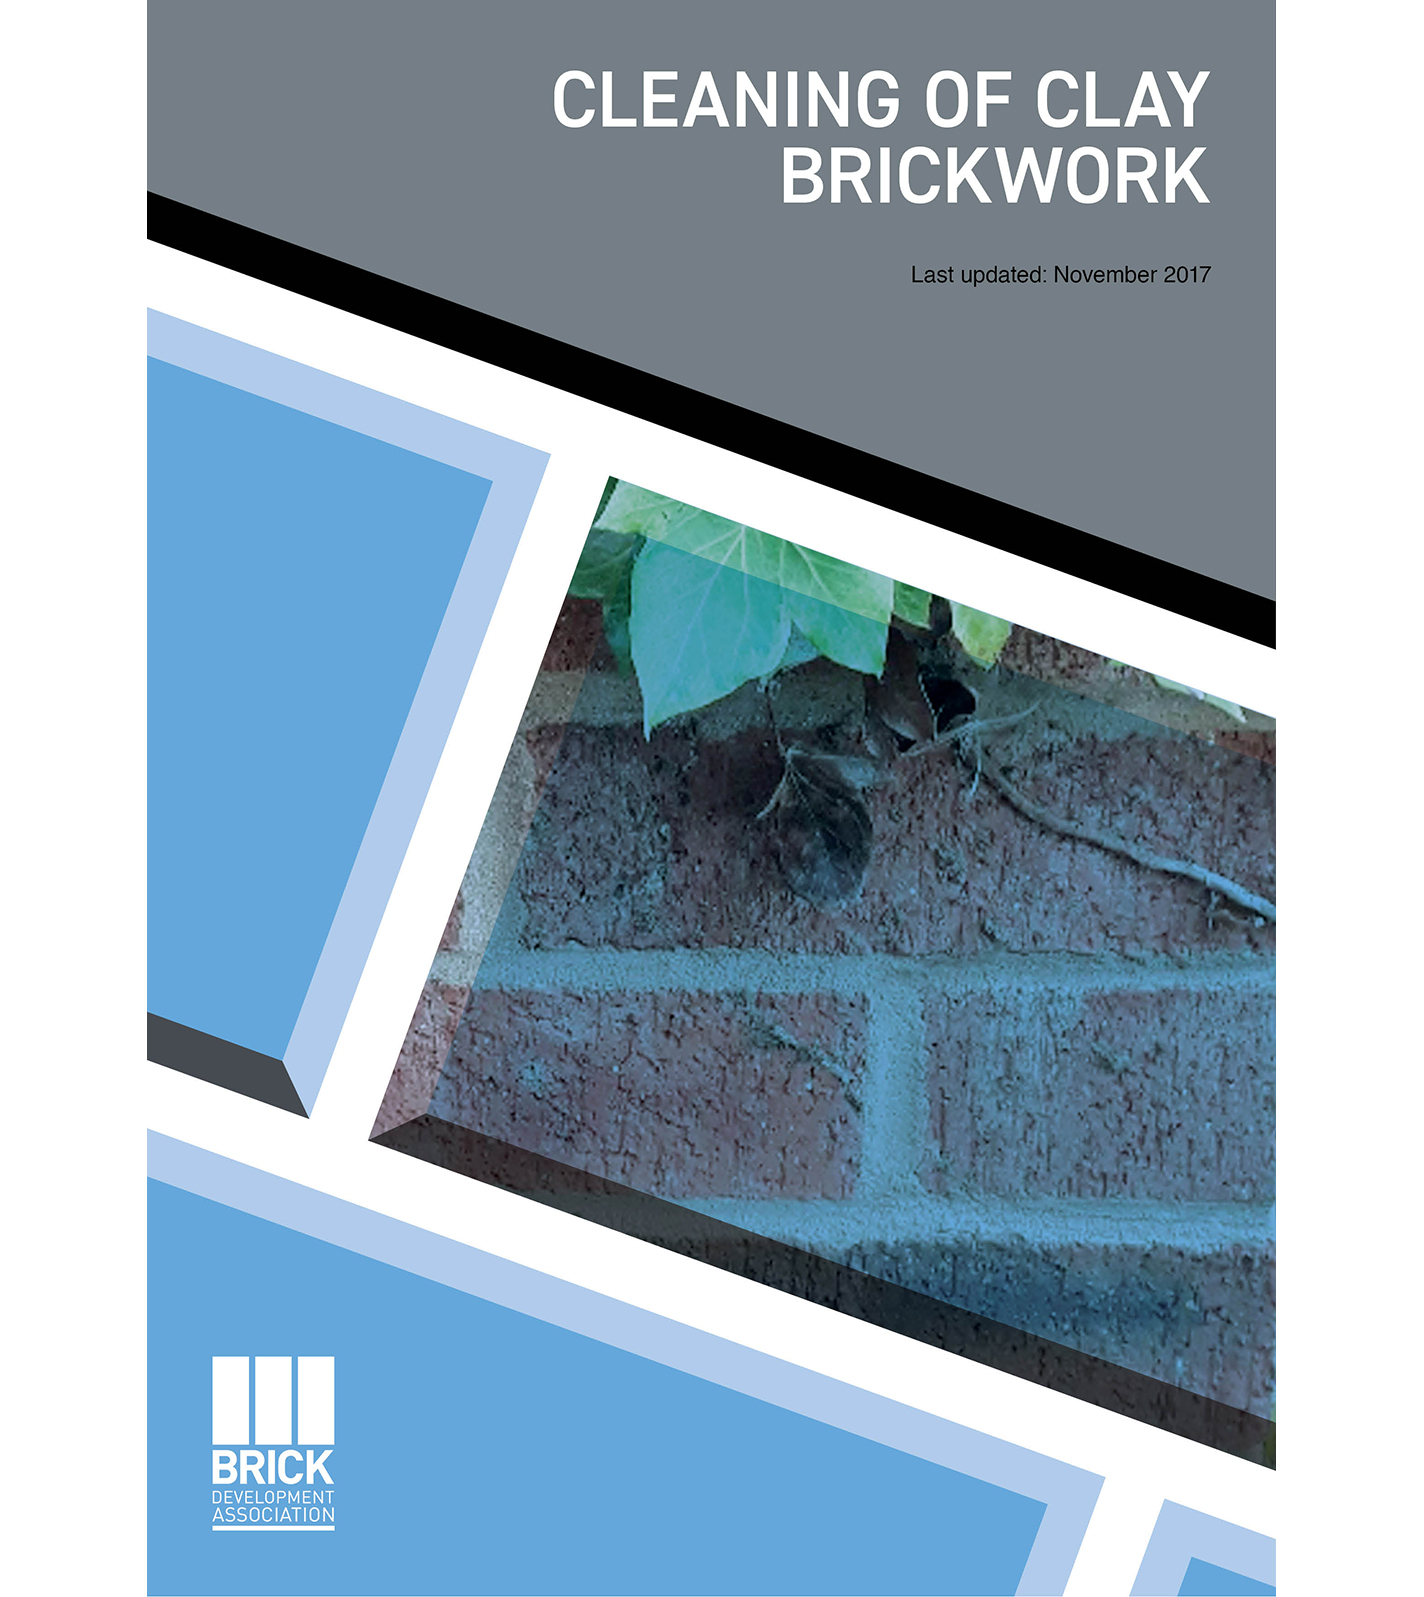 CLEANING OF CLAY BRICKWORK